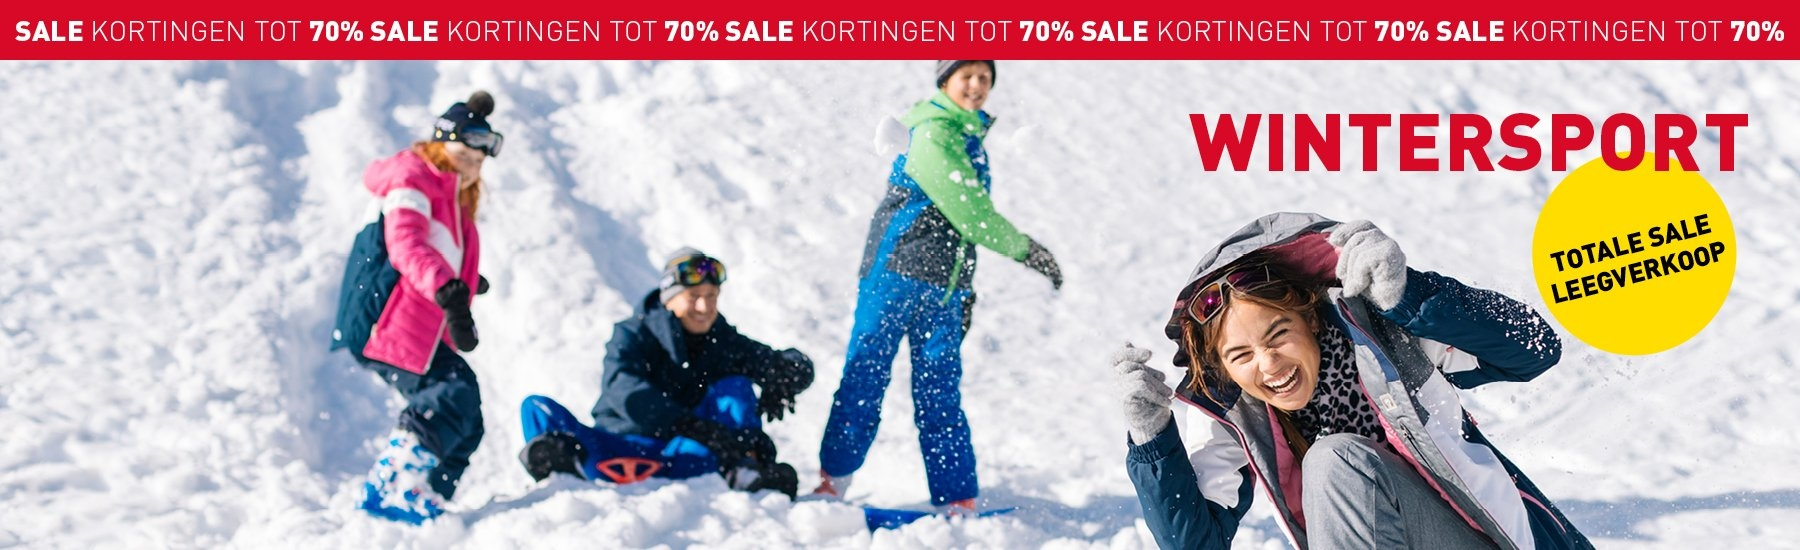 wintersport sale